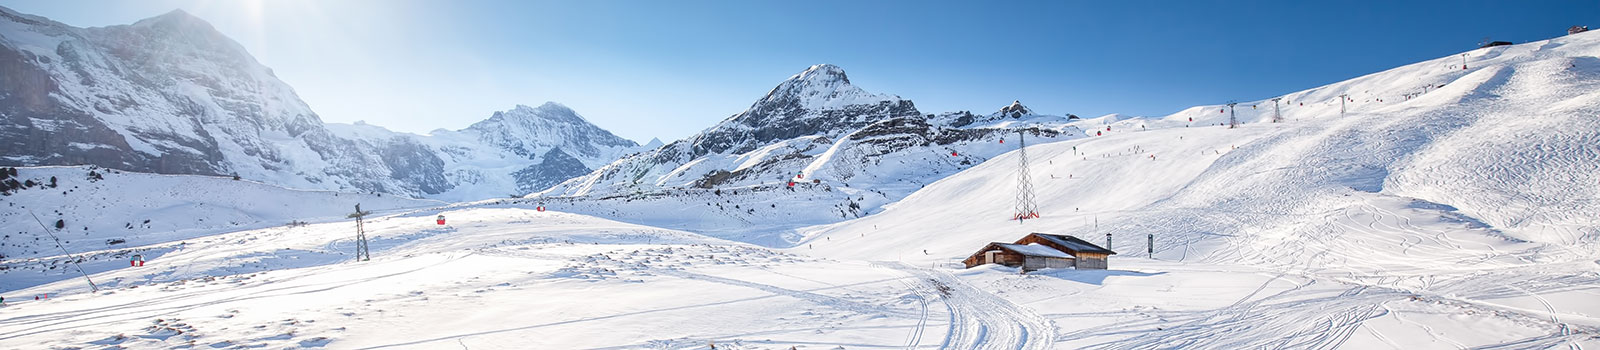 Winter sport in Switzerland